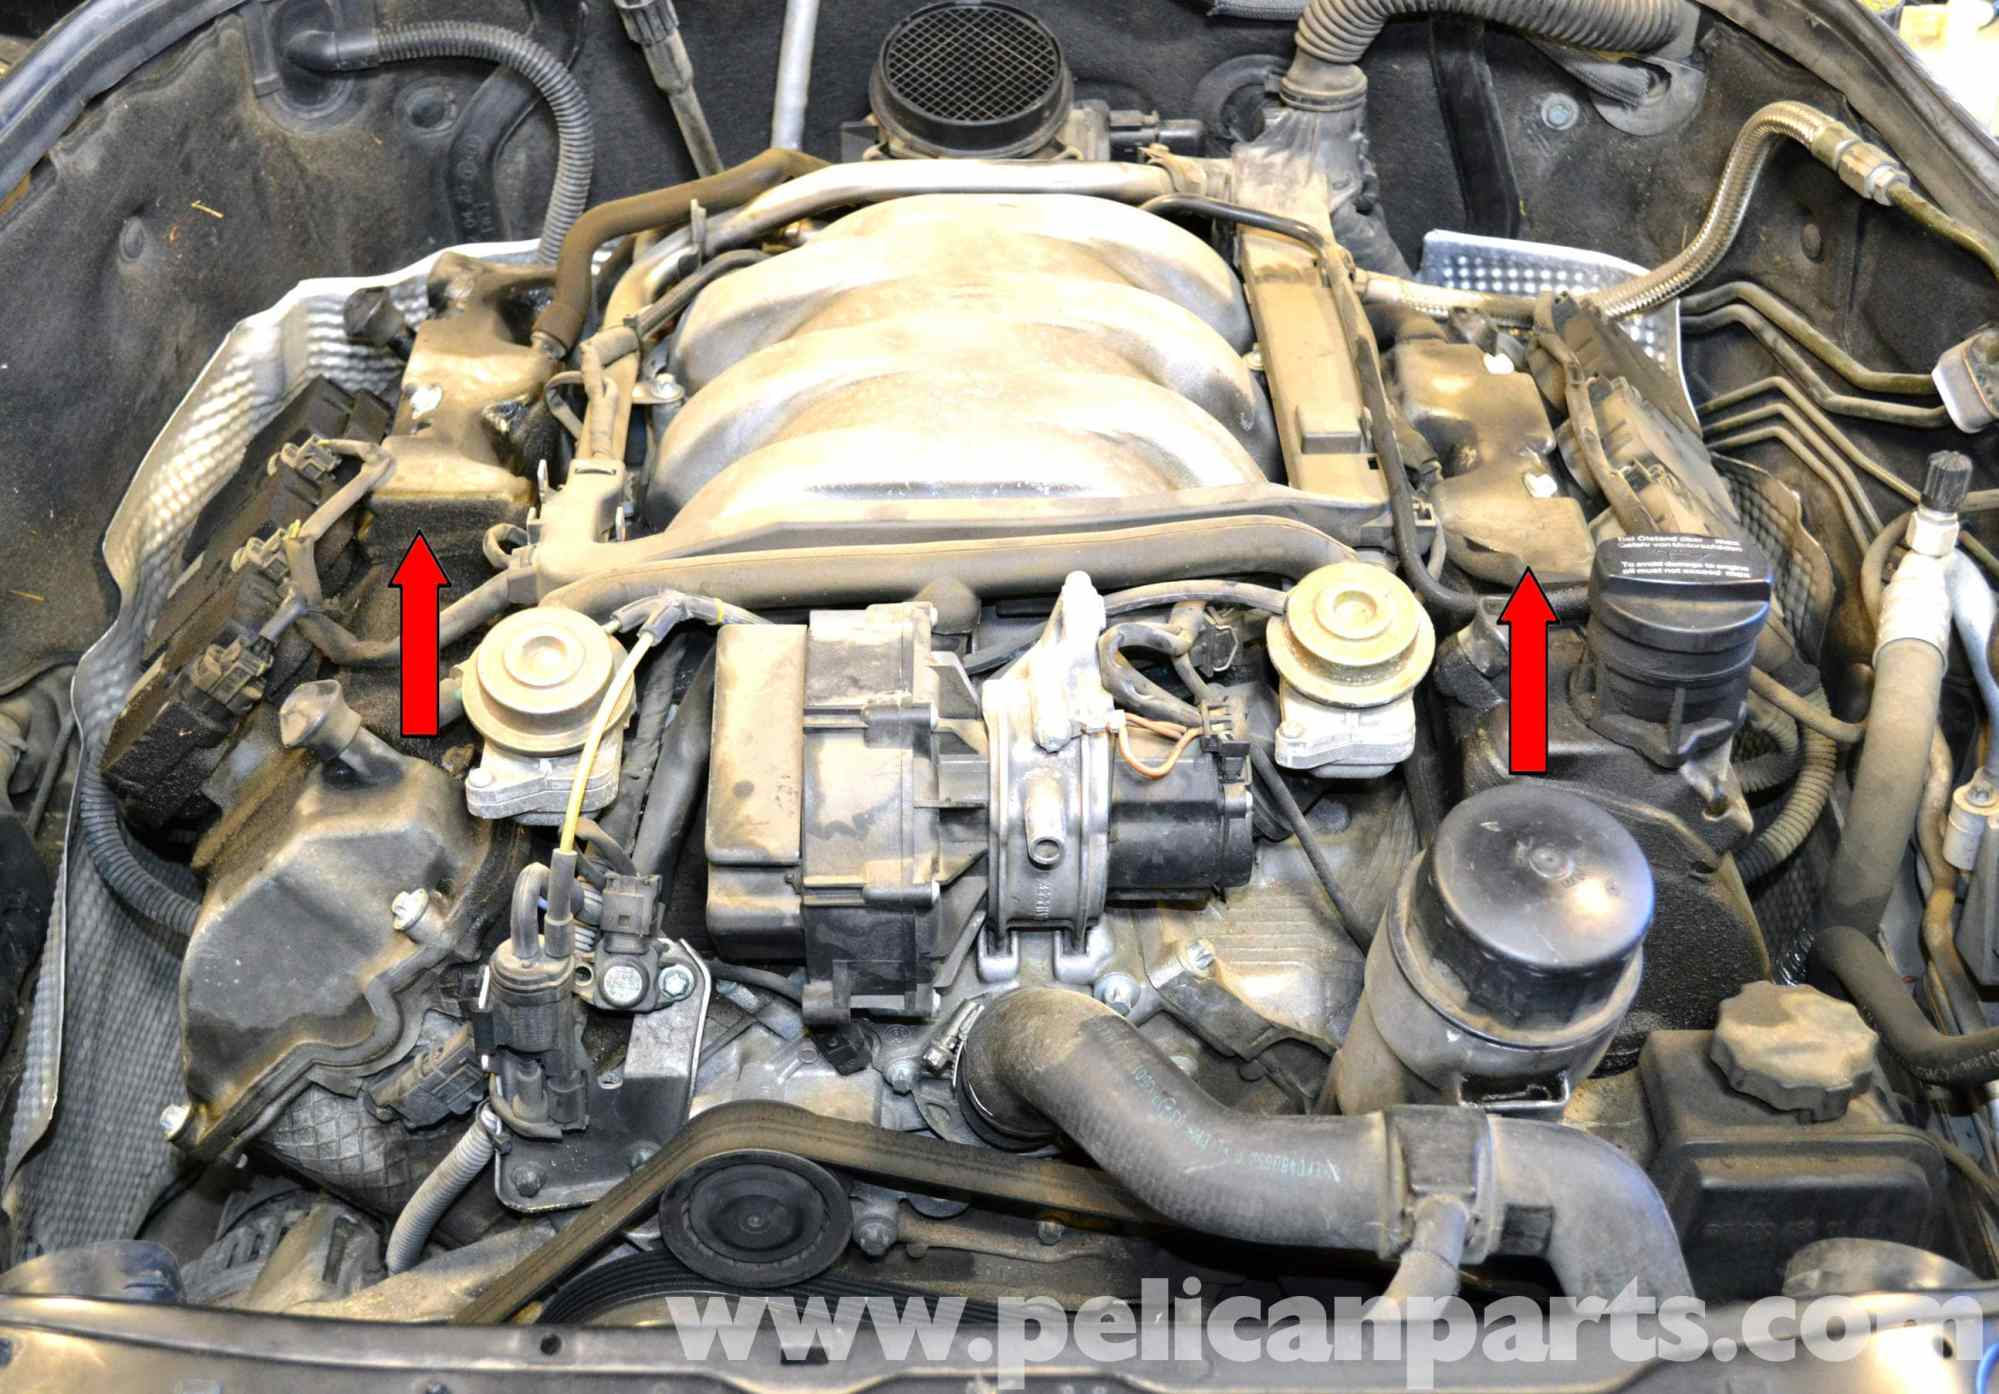 hight resolution of mercedes benz w203 valve cover breather gaskets replacement 2001 rh pelicanparts com 2014 mercedes benz